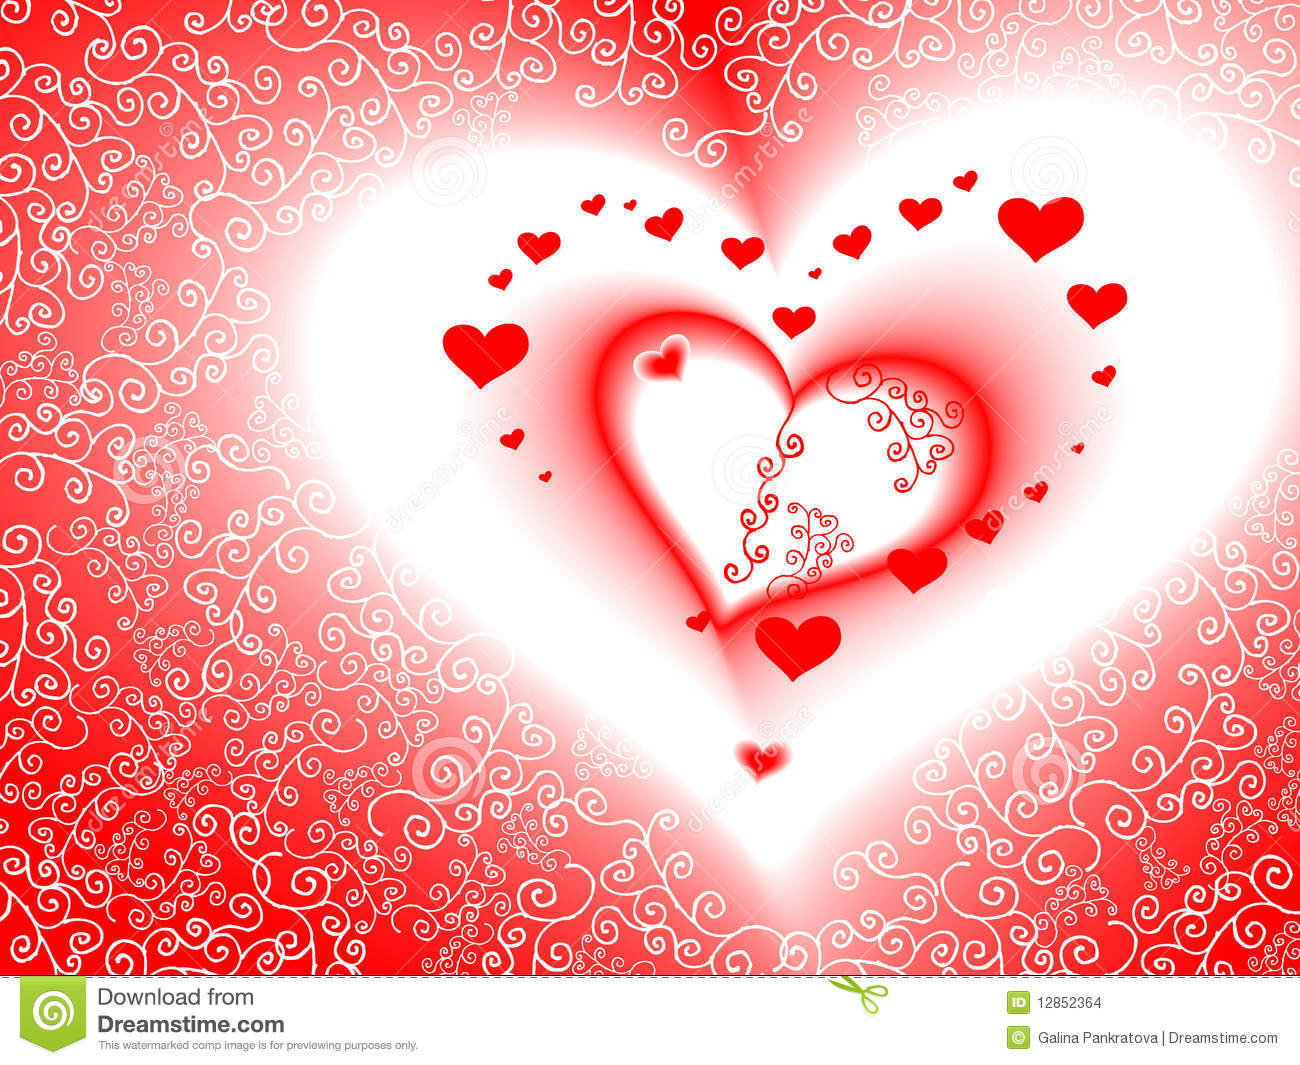 Car Wallpaper Bussines Card Valentine S Day Card Vector Romantic Heart Stock Images